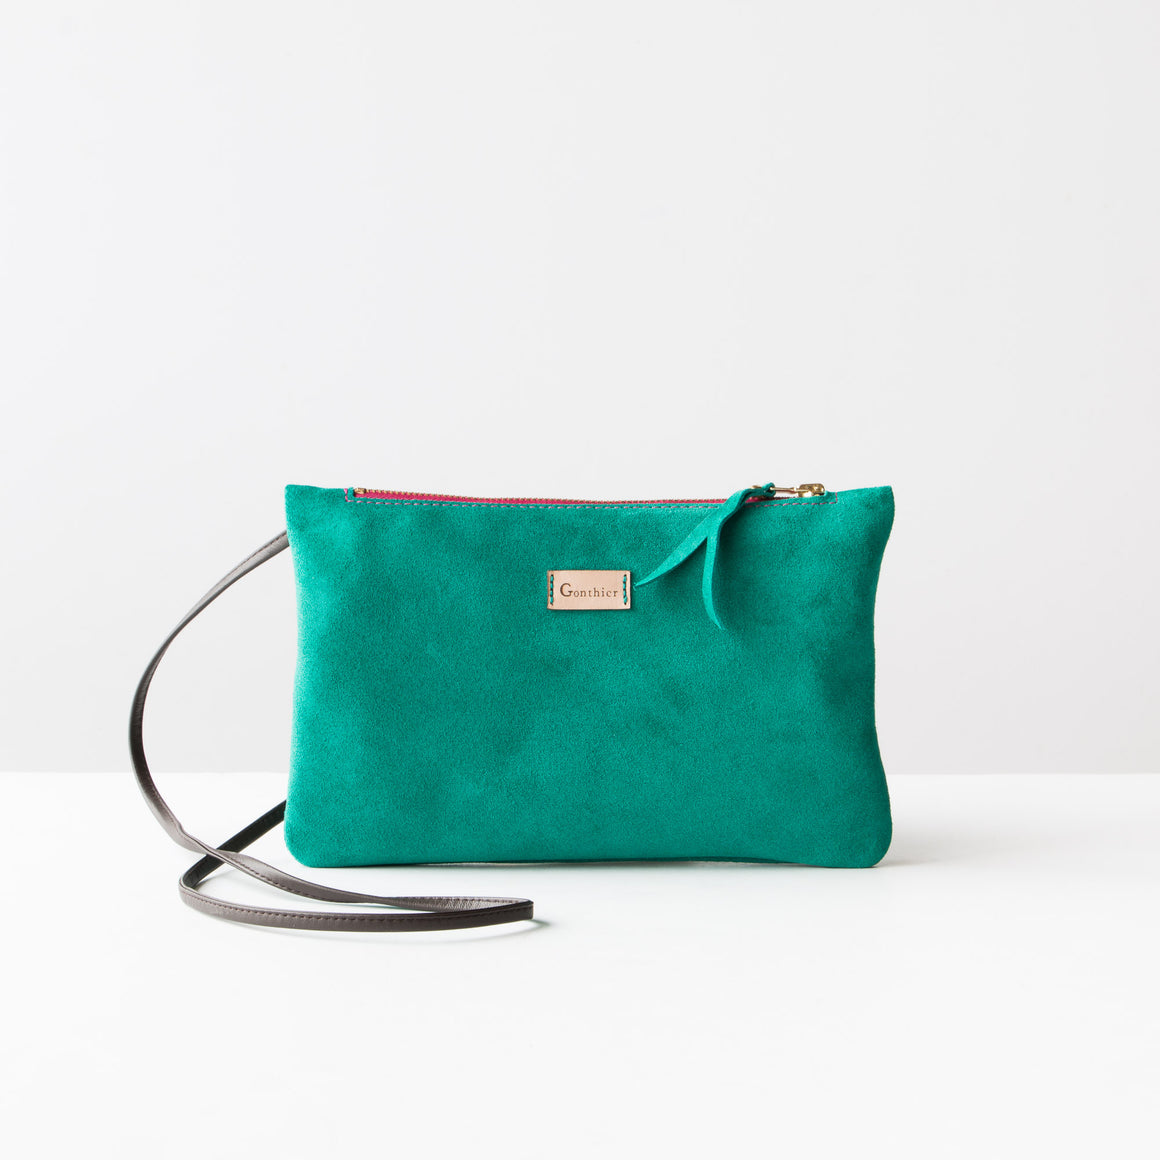 Greystone & Orange - Handmade Small Shoulder Bag in Suede Calfskin - Sold by Chic & Basta